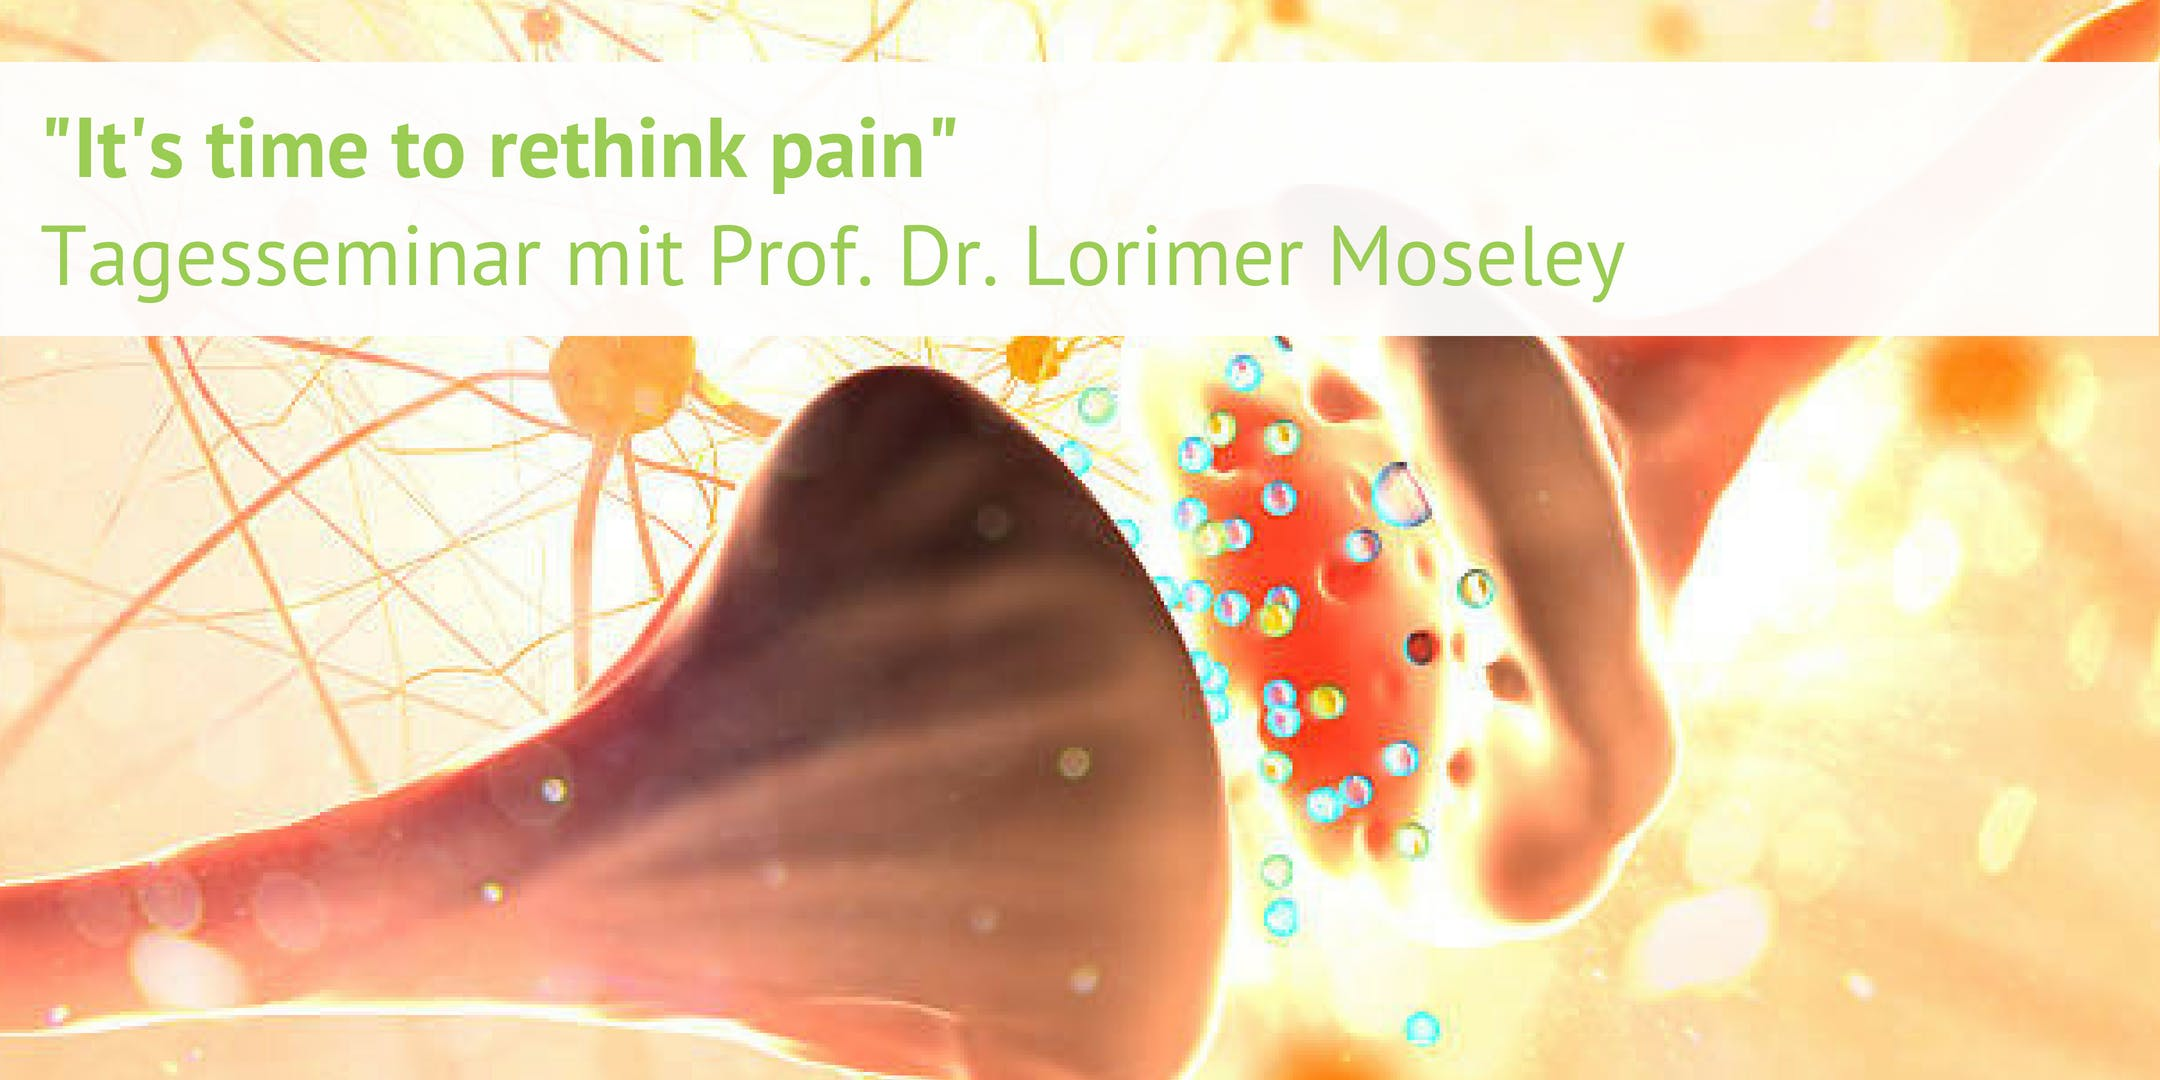 It's time to rethink pain - mit Prof. Dr. Lorimer Moseley